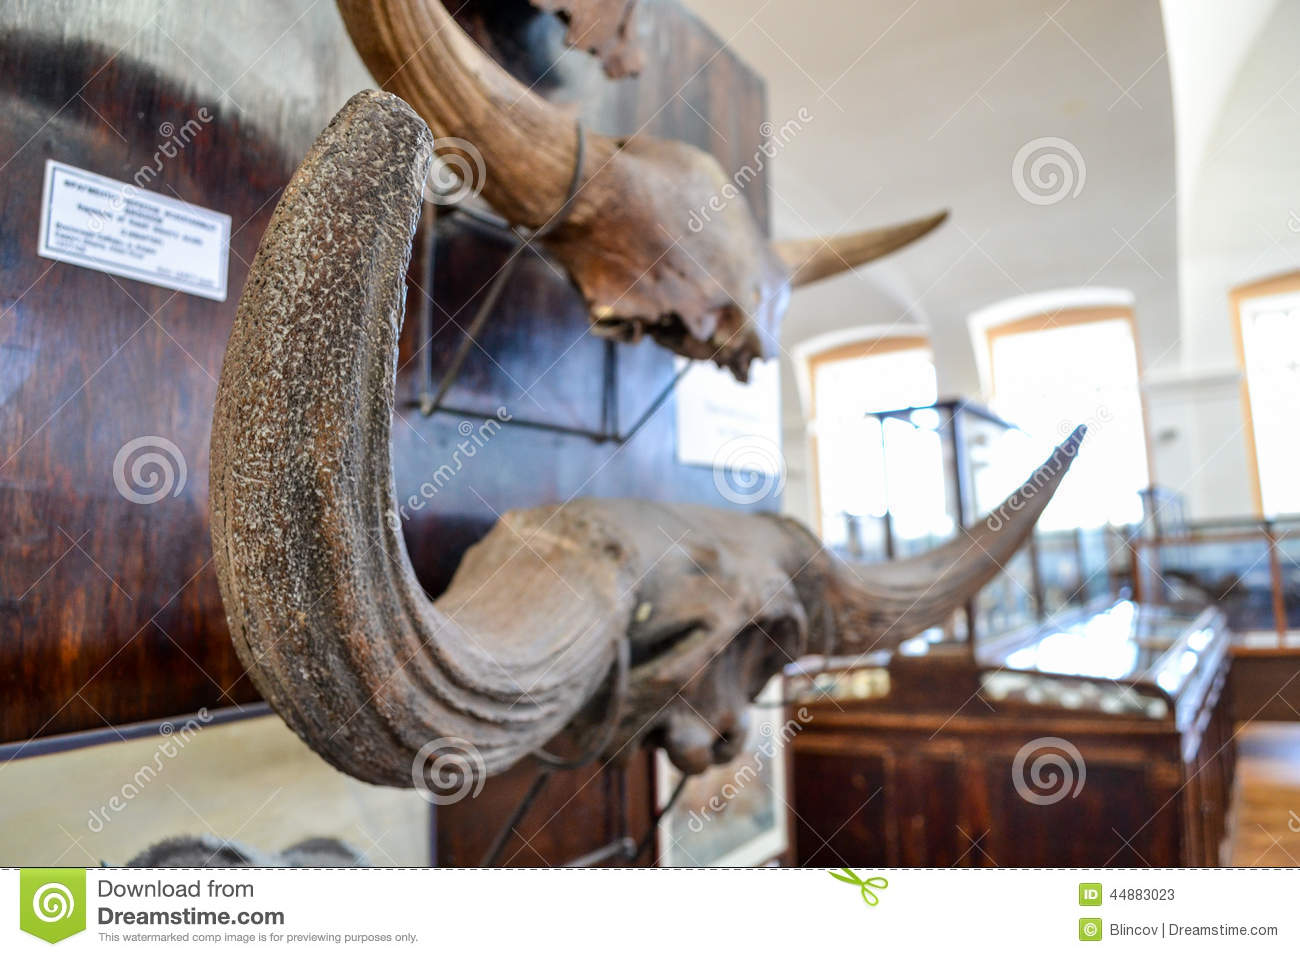 The horns on the wall